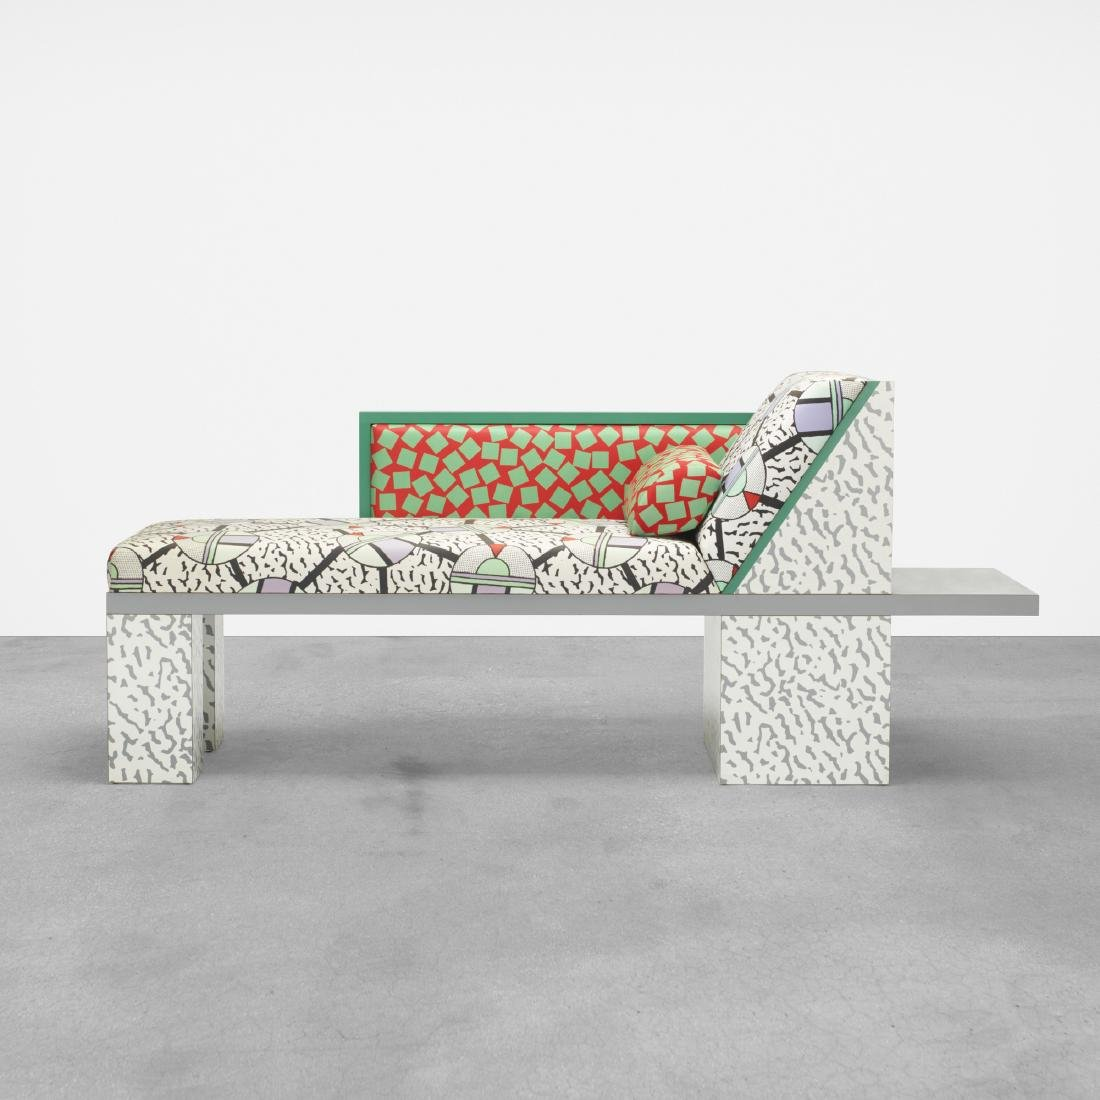 Nathalie du Pasquier, Royal daybed